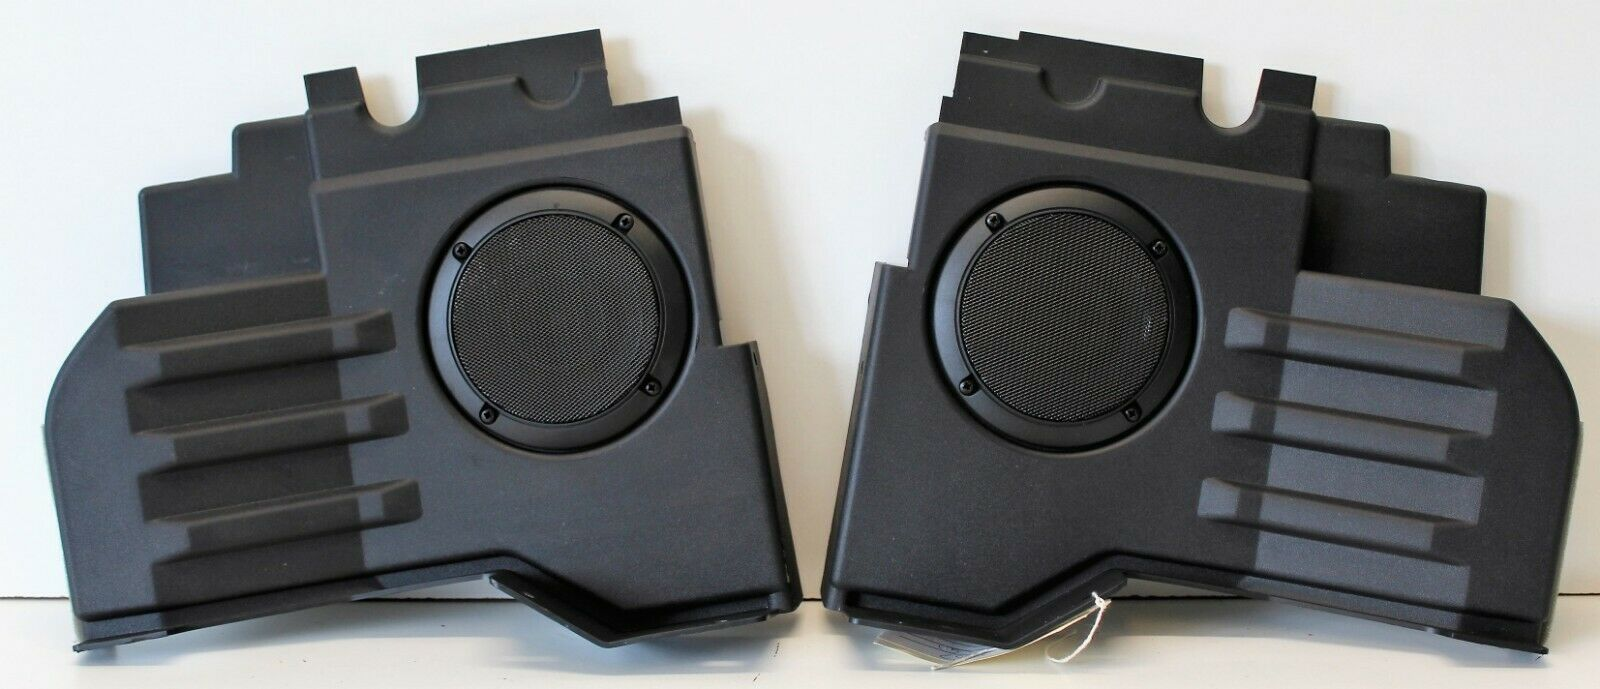 Land Rover Defender Stepped Tub Rear Speakers's featured image